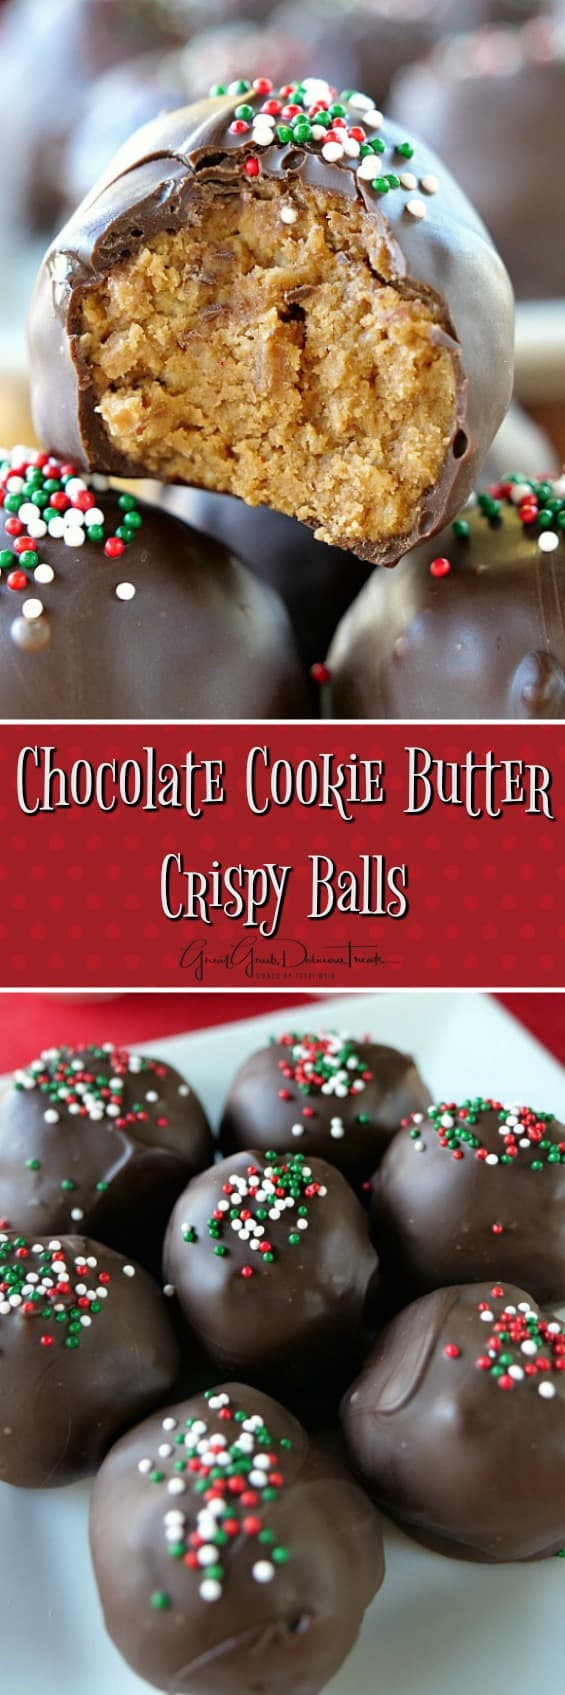 Chocolate Cookie Butter Crispy Balls